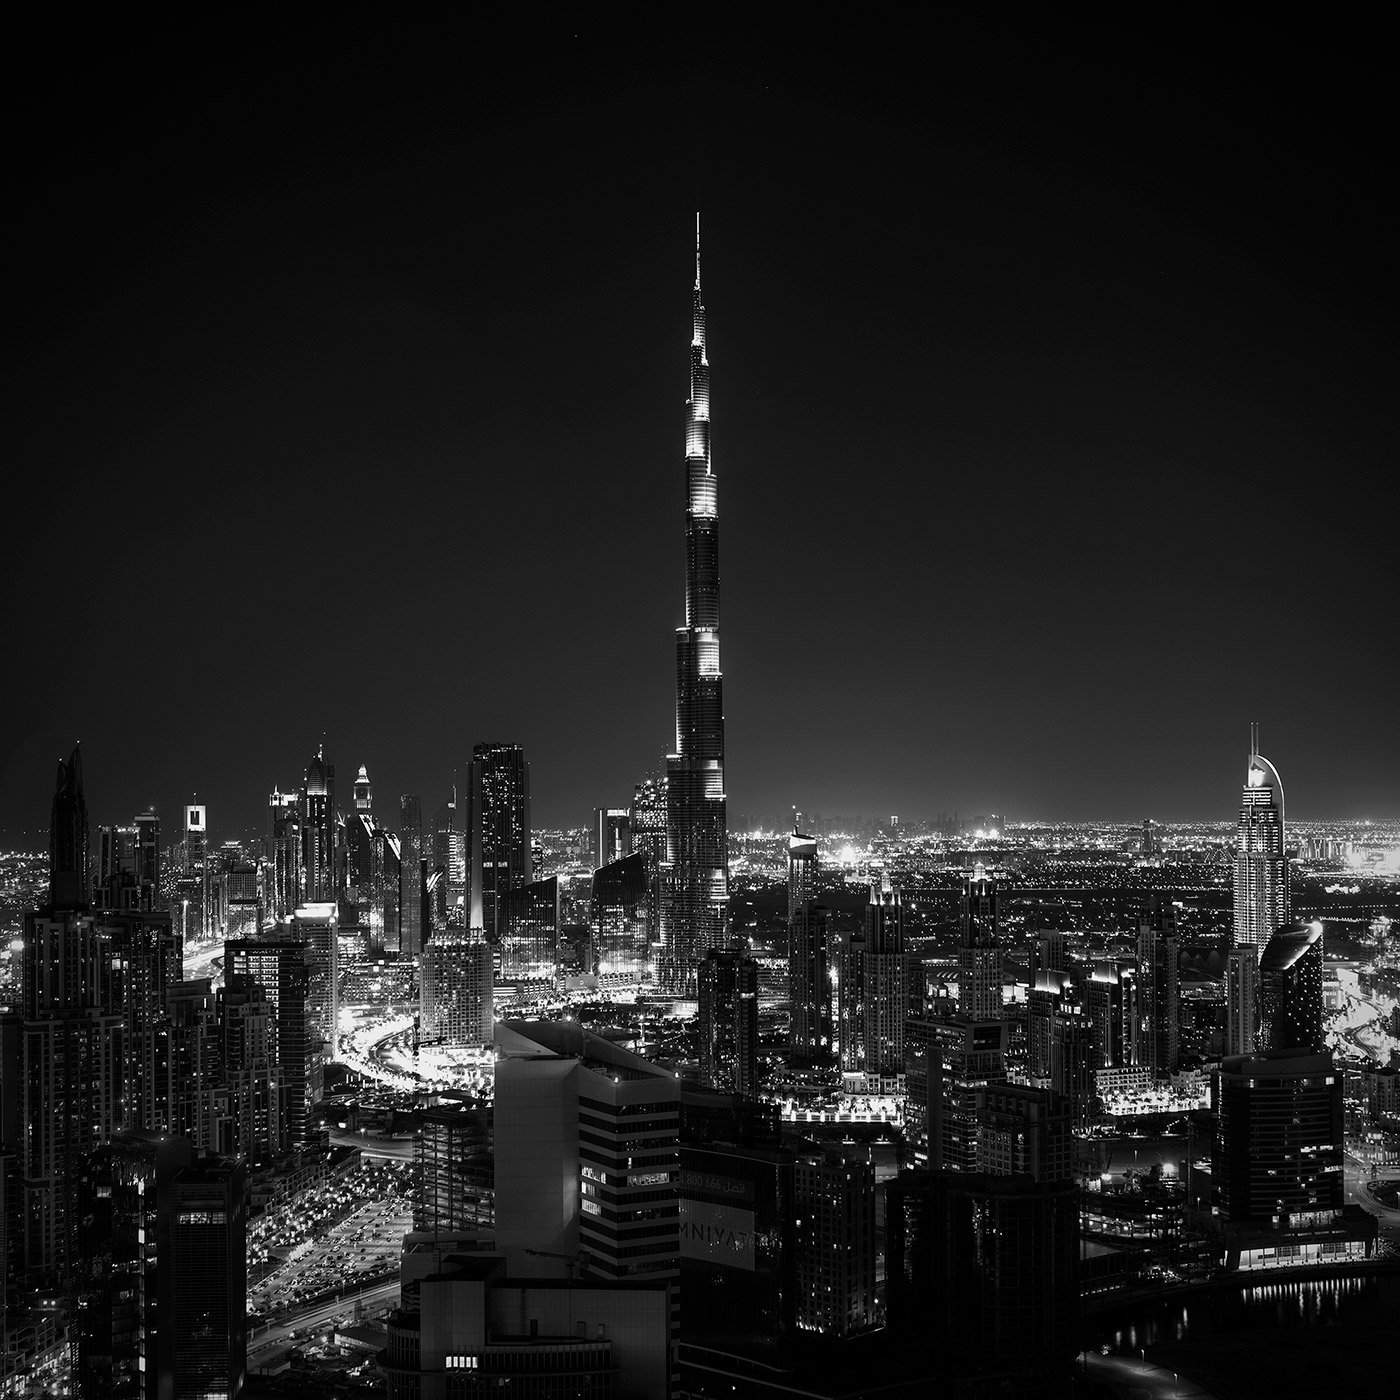 Black and White Fine Art Photography | Anique Ahmed